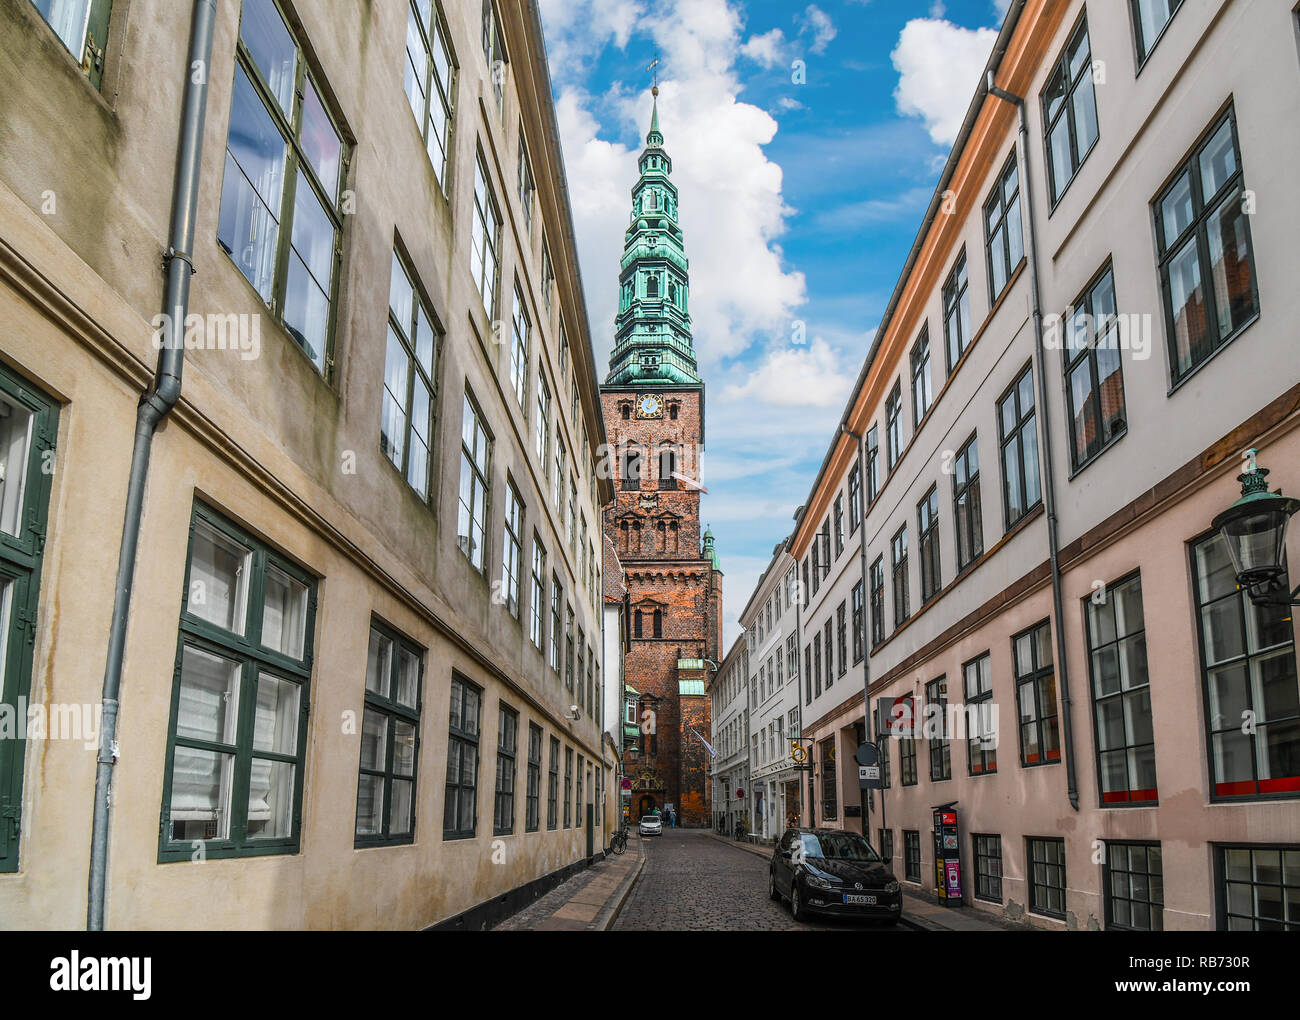 The clock tower of the St Nicholas Church is seen from a nearby street on a summer day in Copenhagen, Denmark. - Stock Image